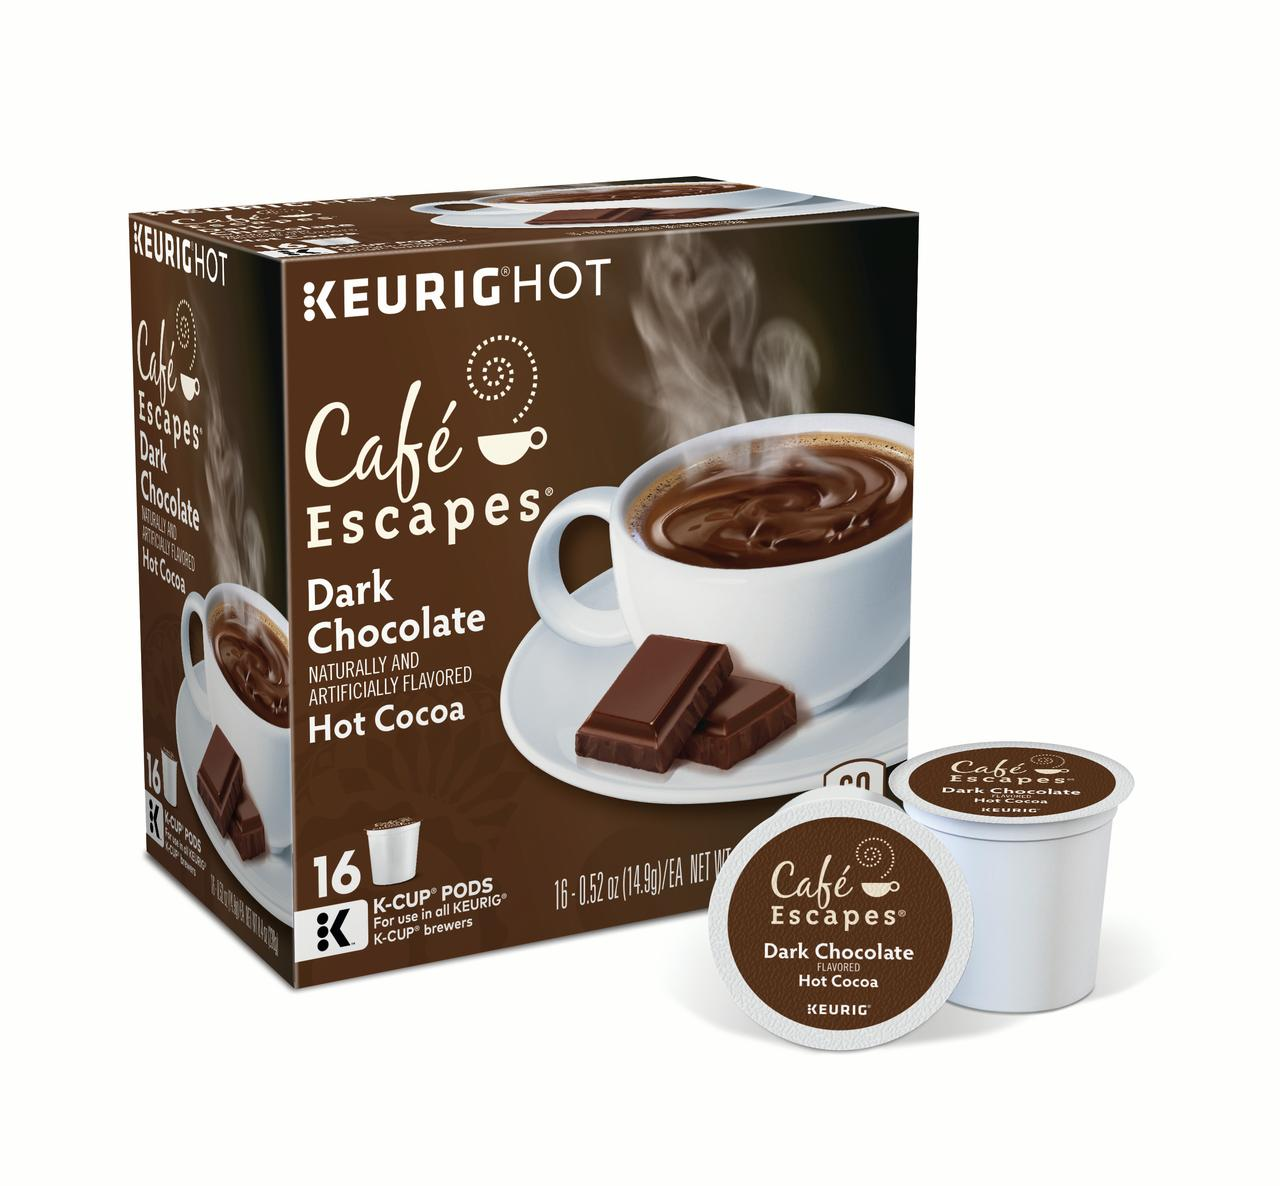 Café Escapes Dark Chocolate Hot Cocoa Keurig Single-Serve K-Cup Pods, 16 Count